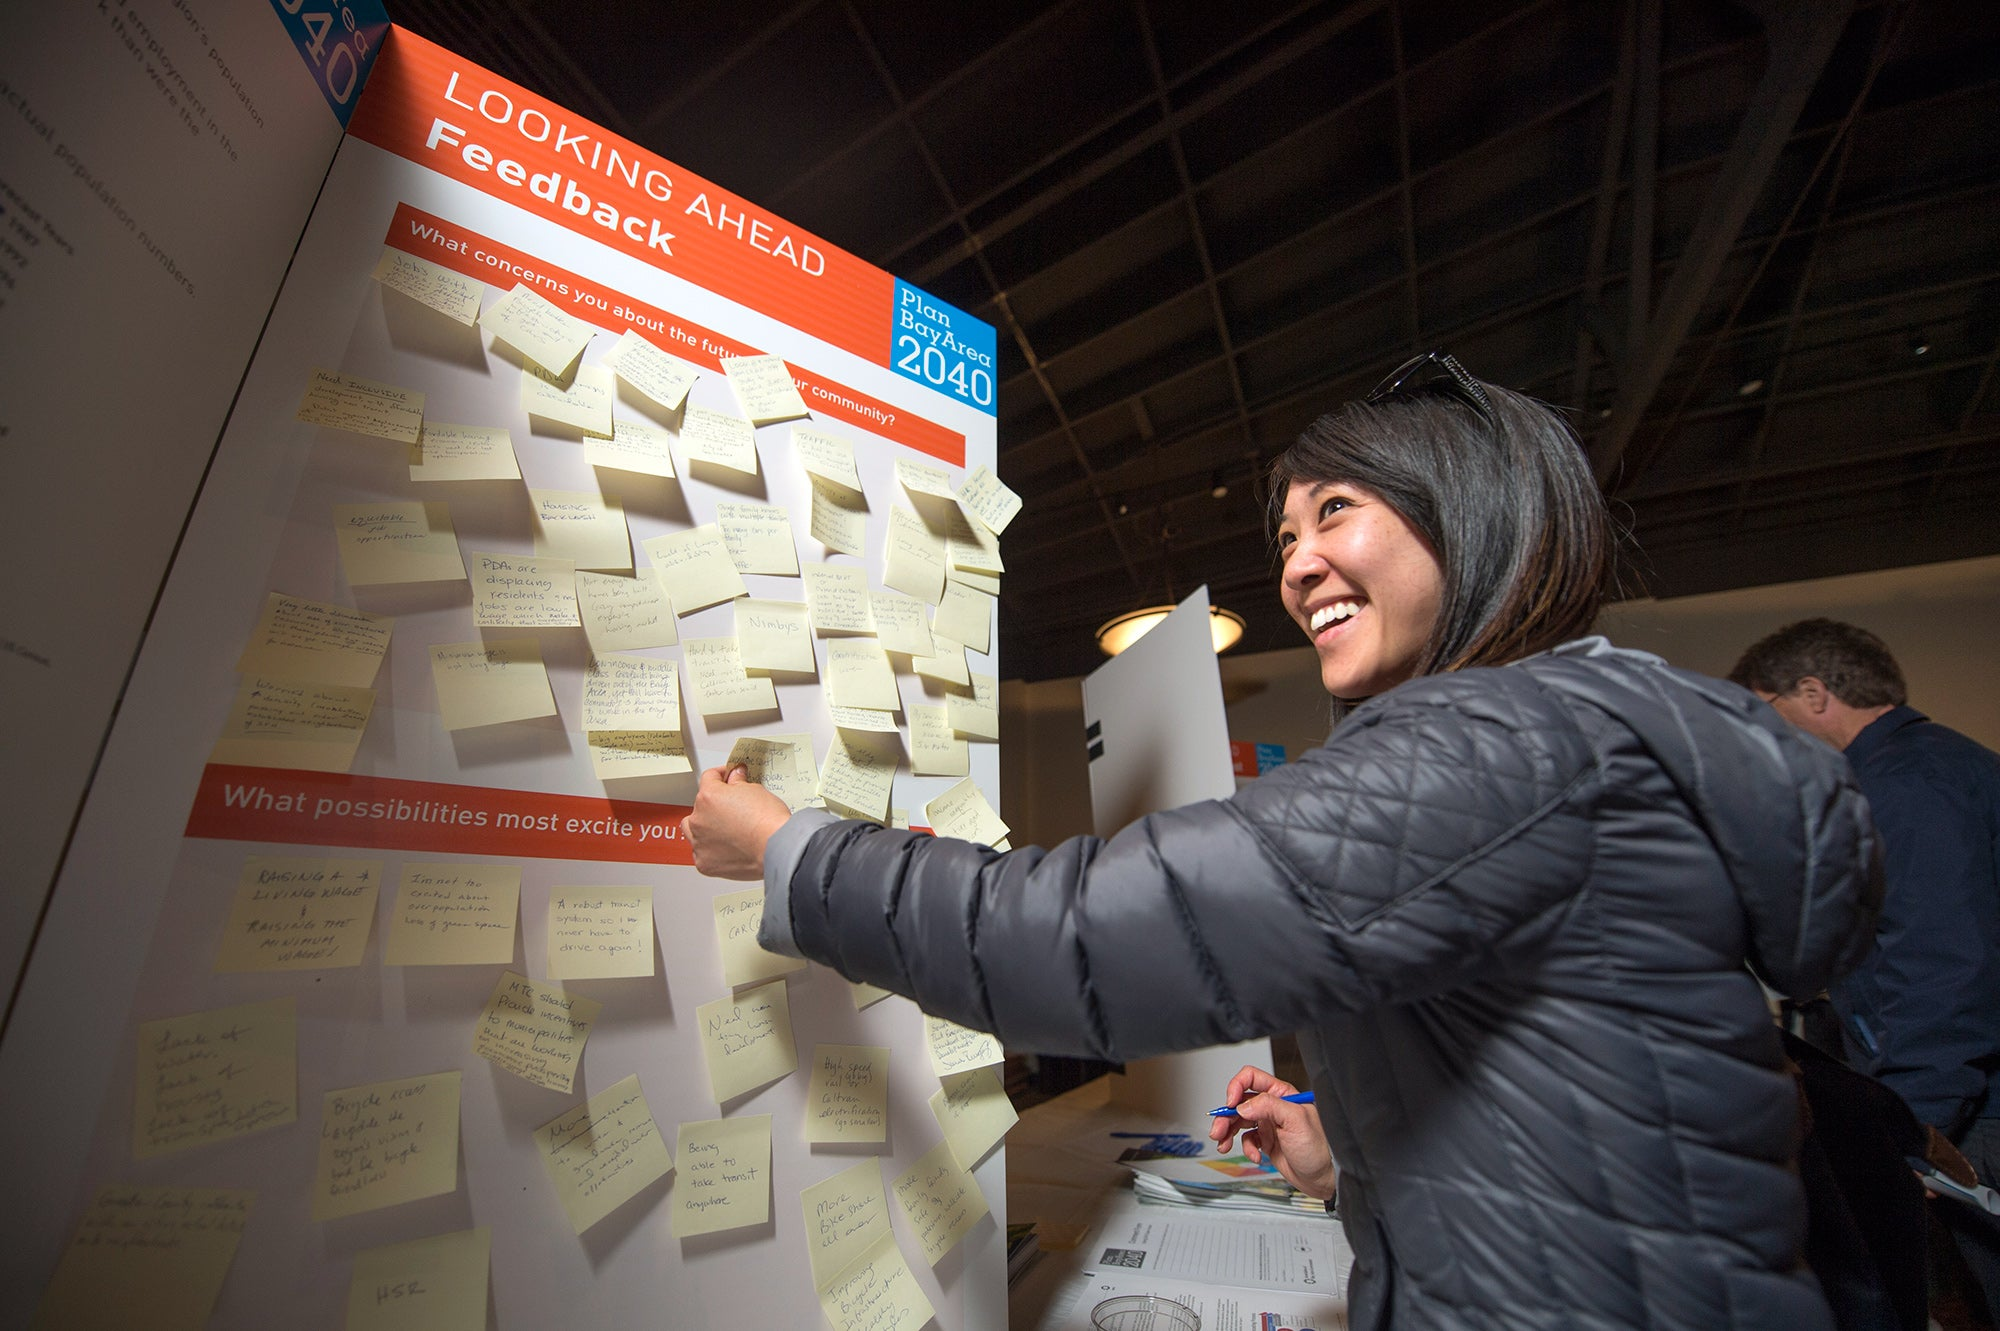 San Mateo open house participant leaves feedback